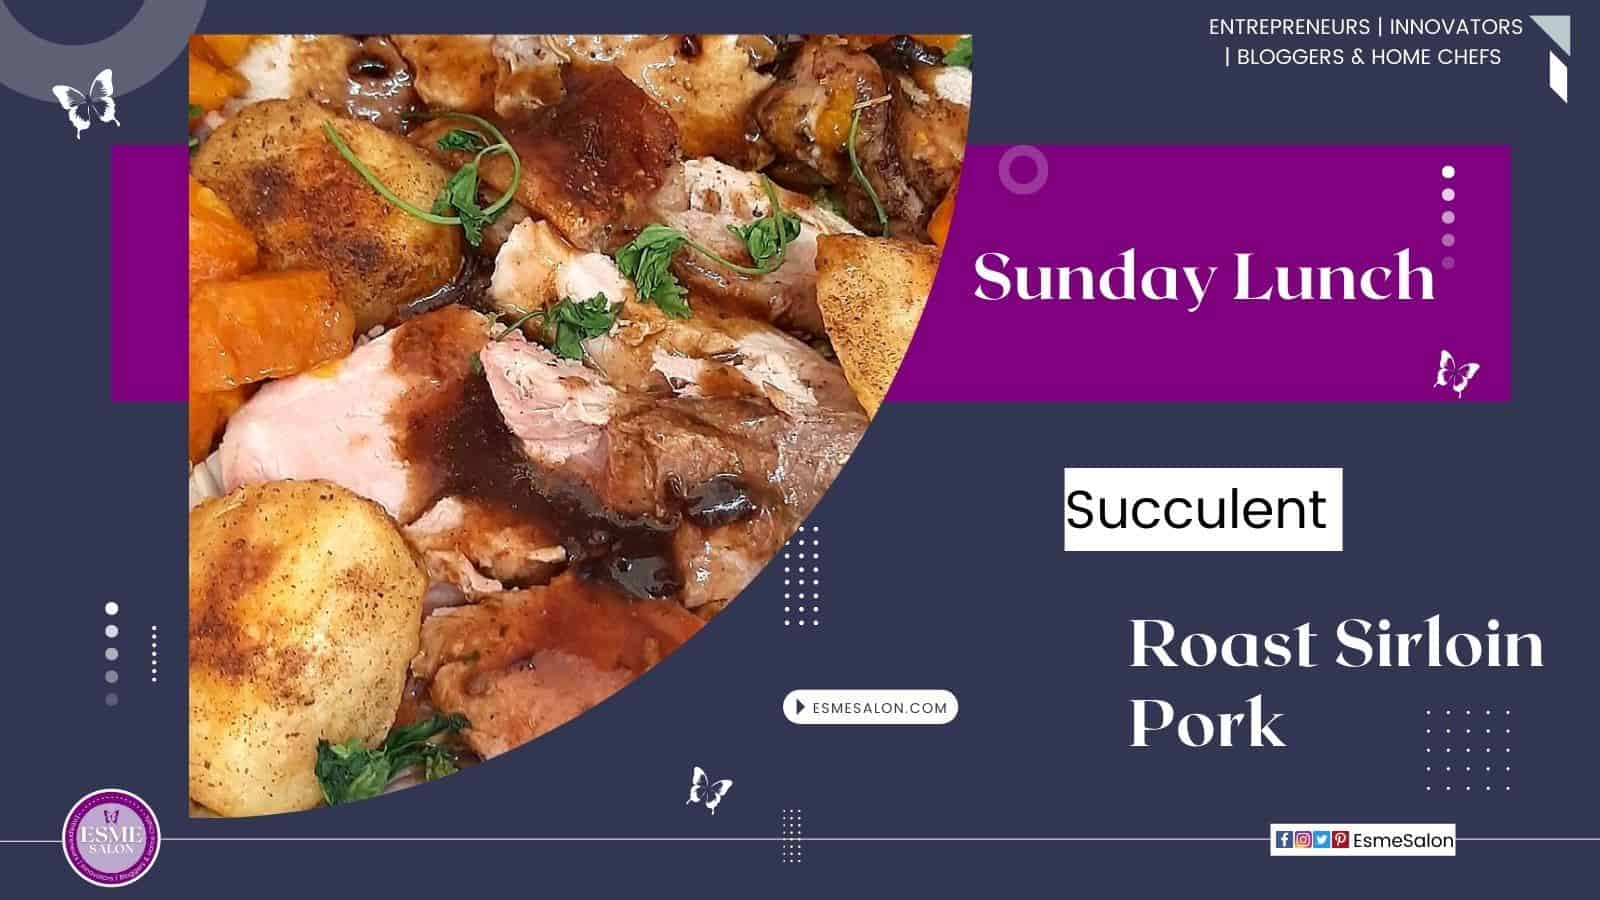 Slices of succulent Sirloin Pork roast with pumpkin and roasted potatoes and garnished with parsley